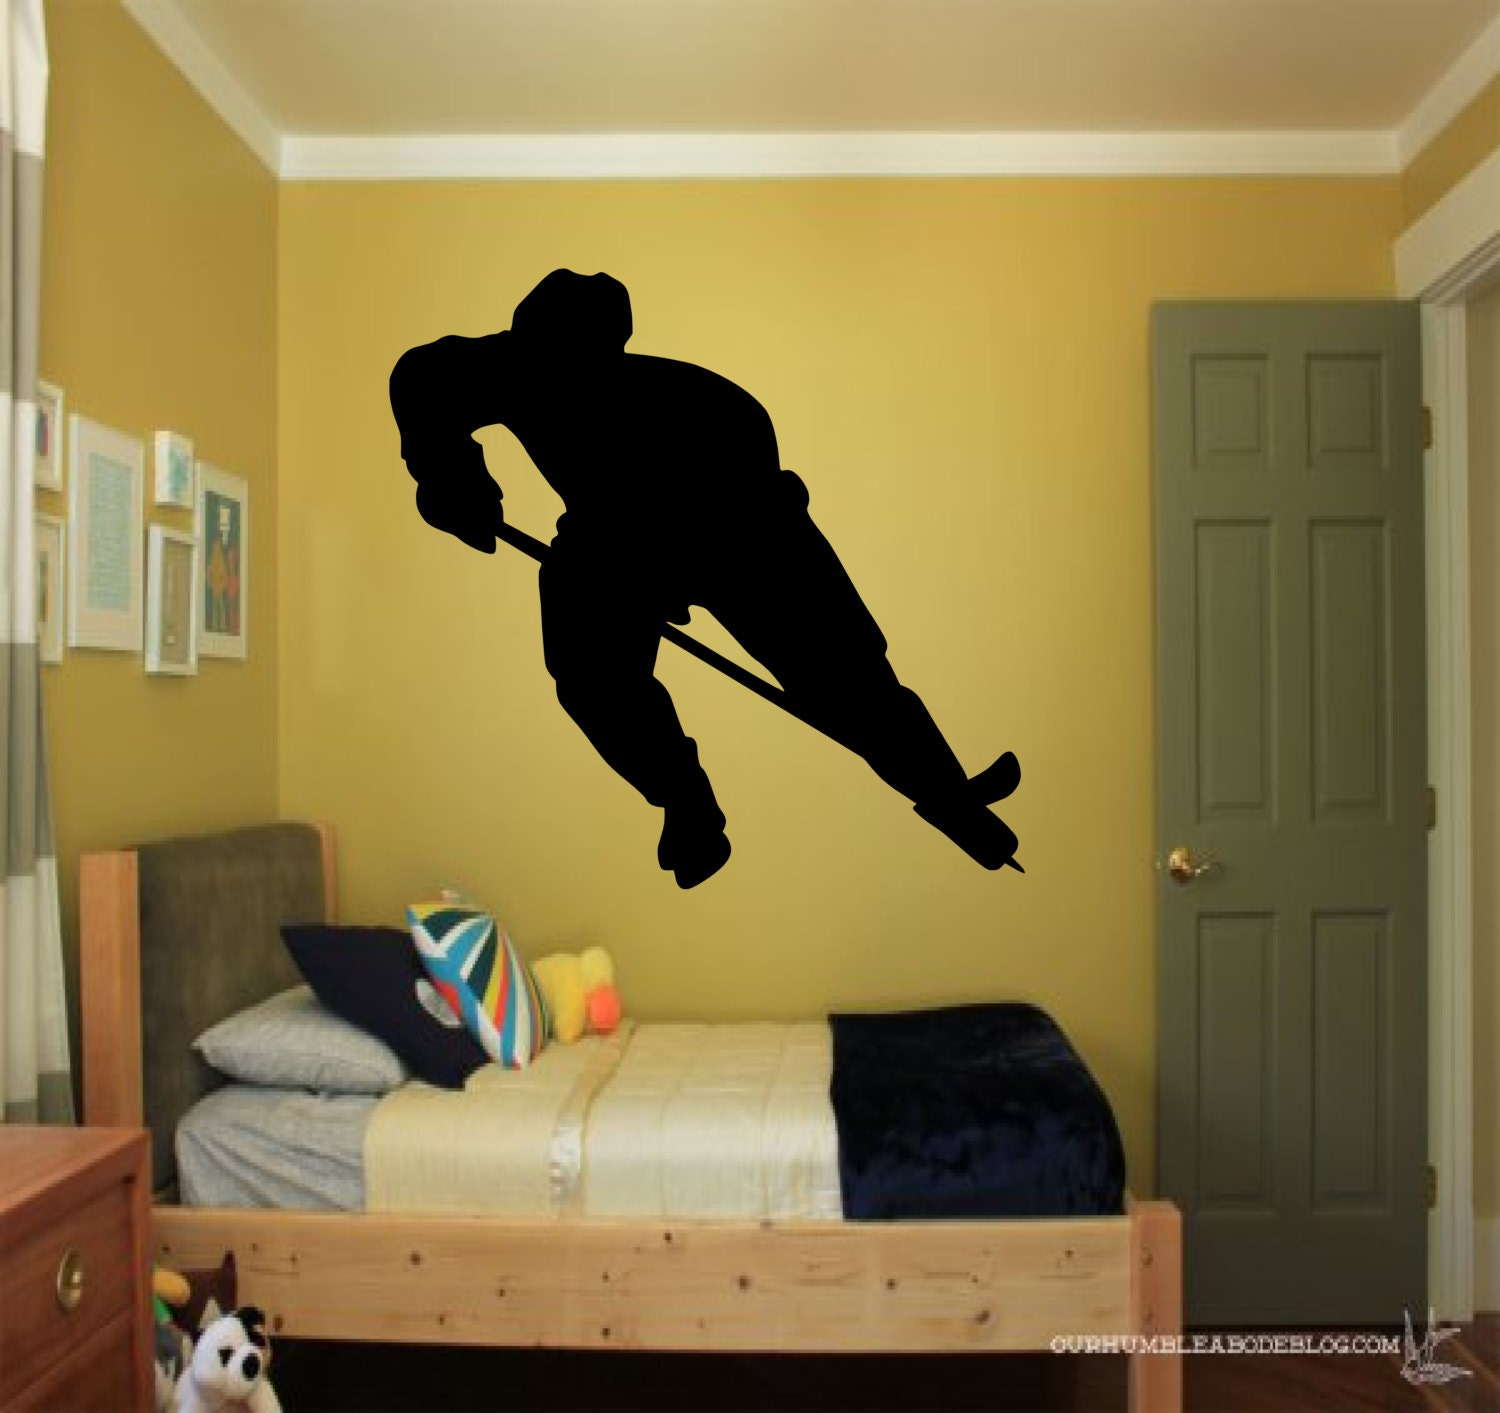 hockey player wall decal sports decals hockey wall decal zoom